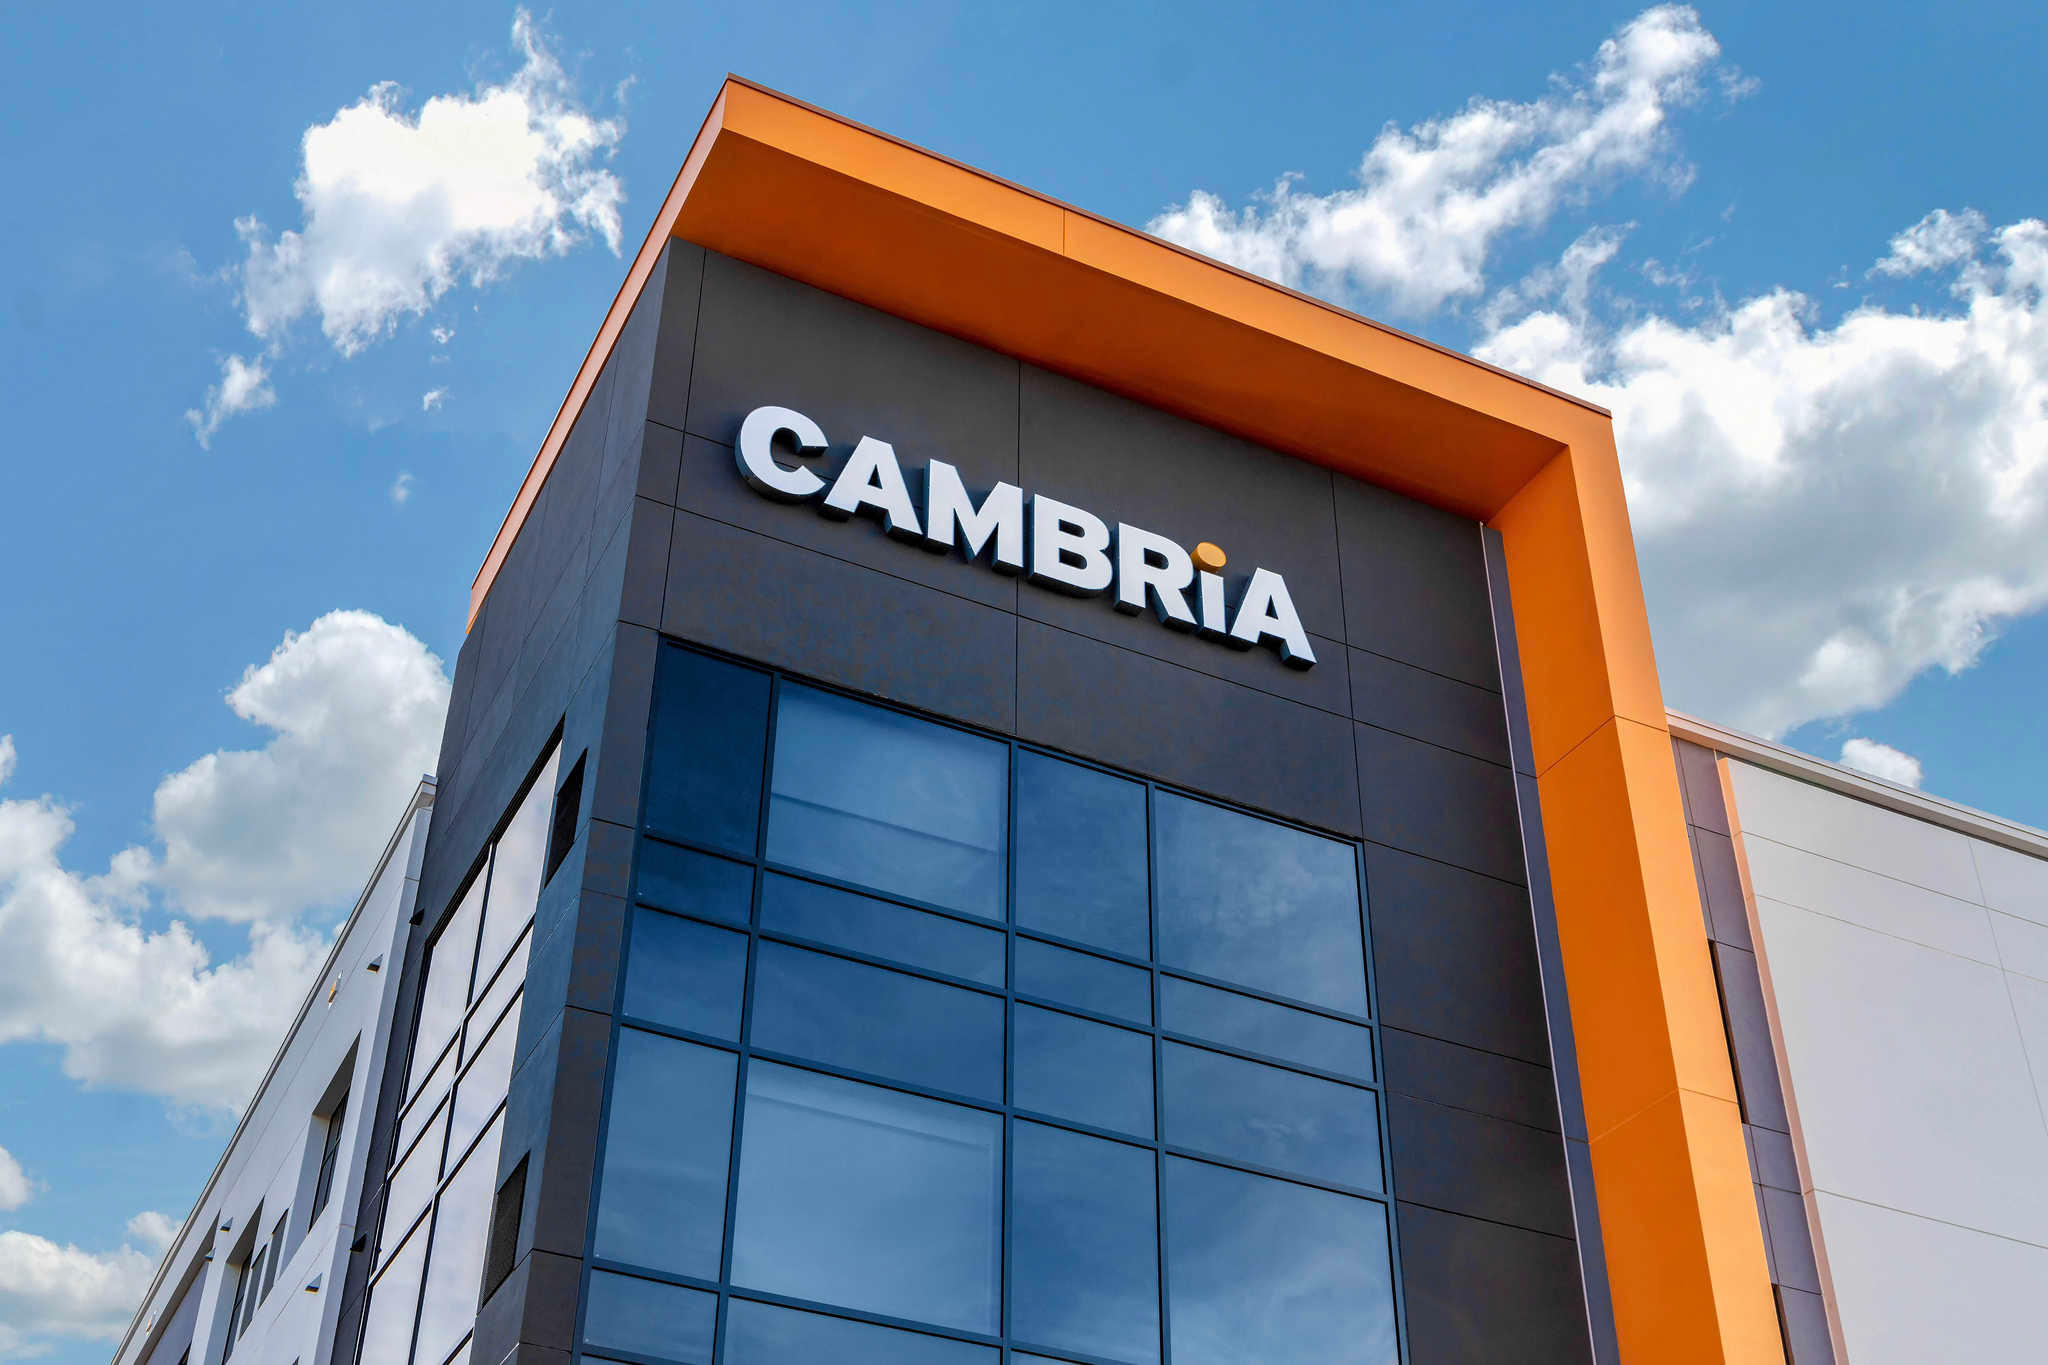 Cambria Hotel Arundel Mills-BWI Airport image 2